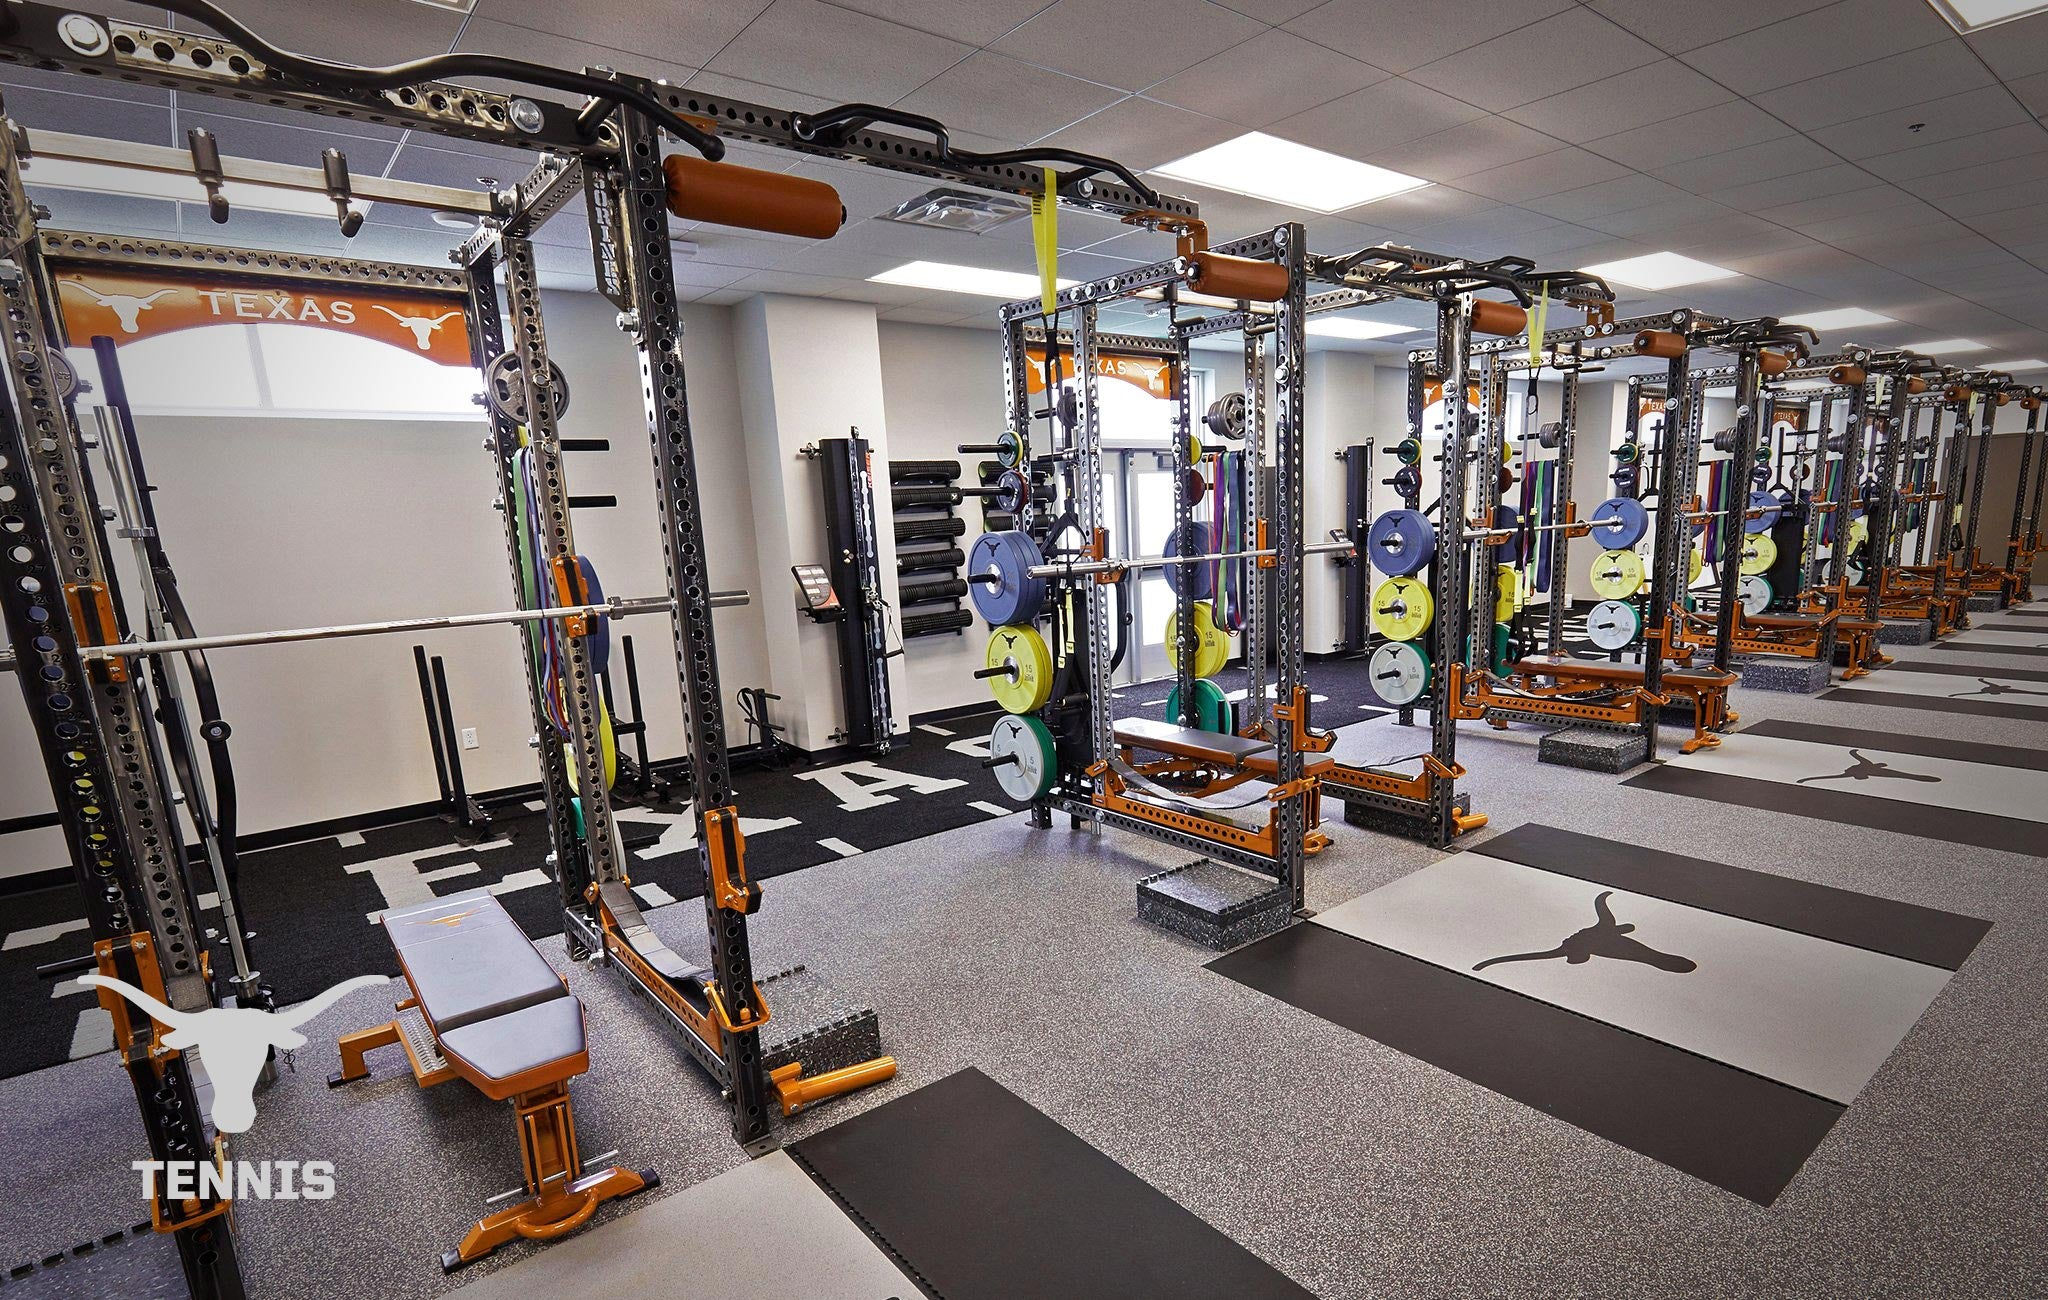 Texas Longhorn tennis Sorinex strength and conditioning facility